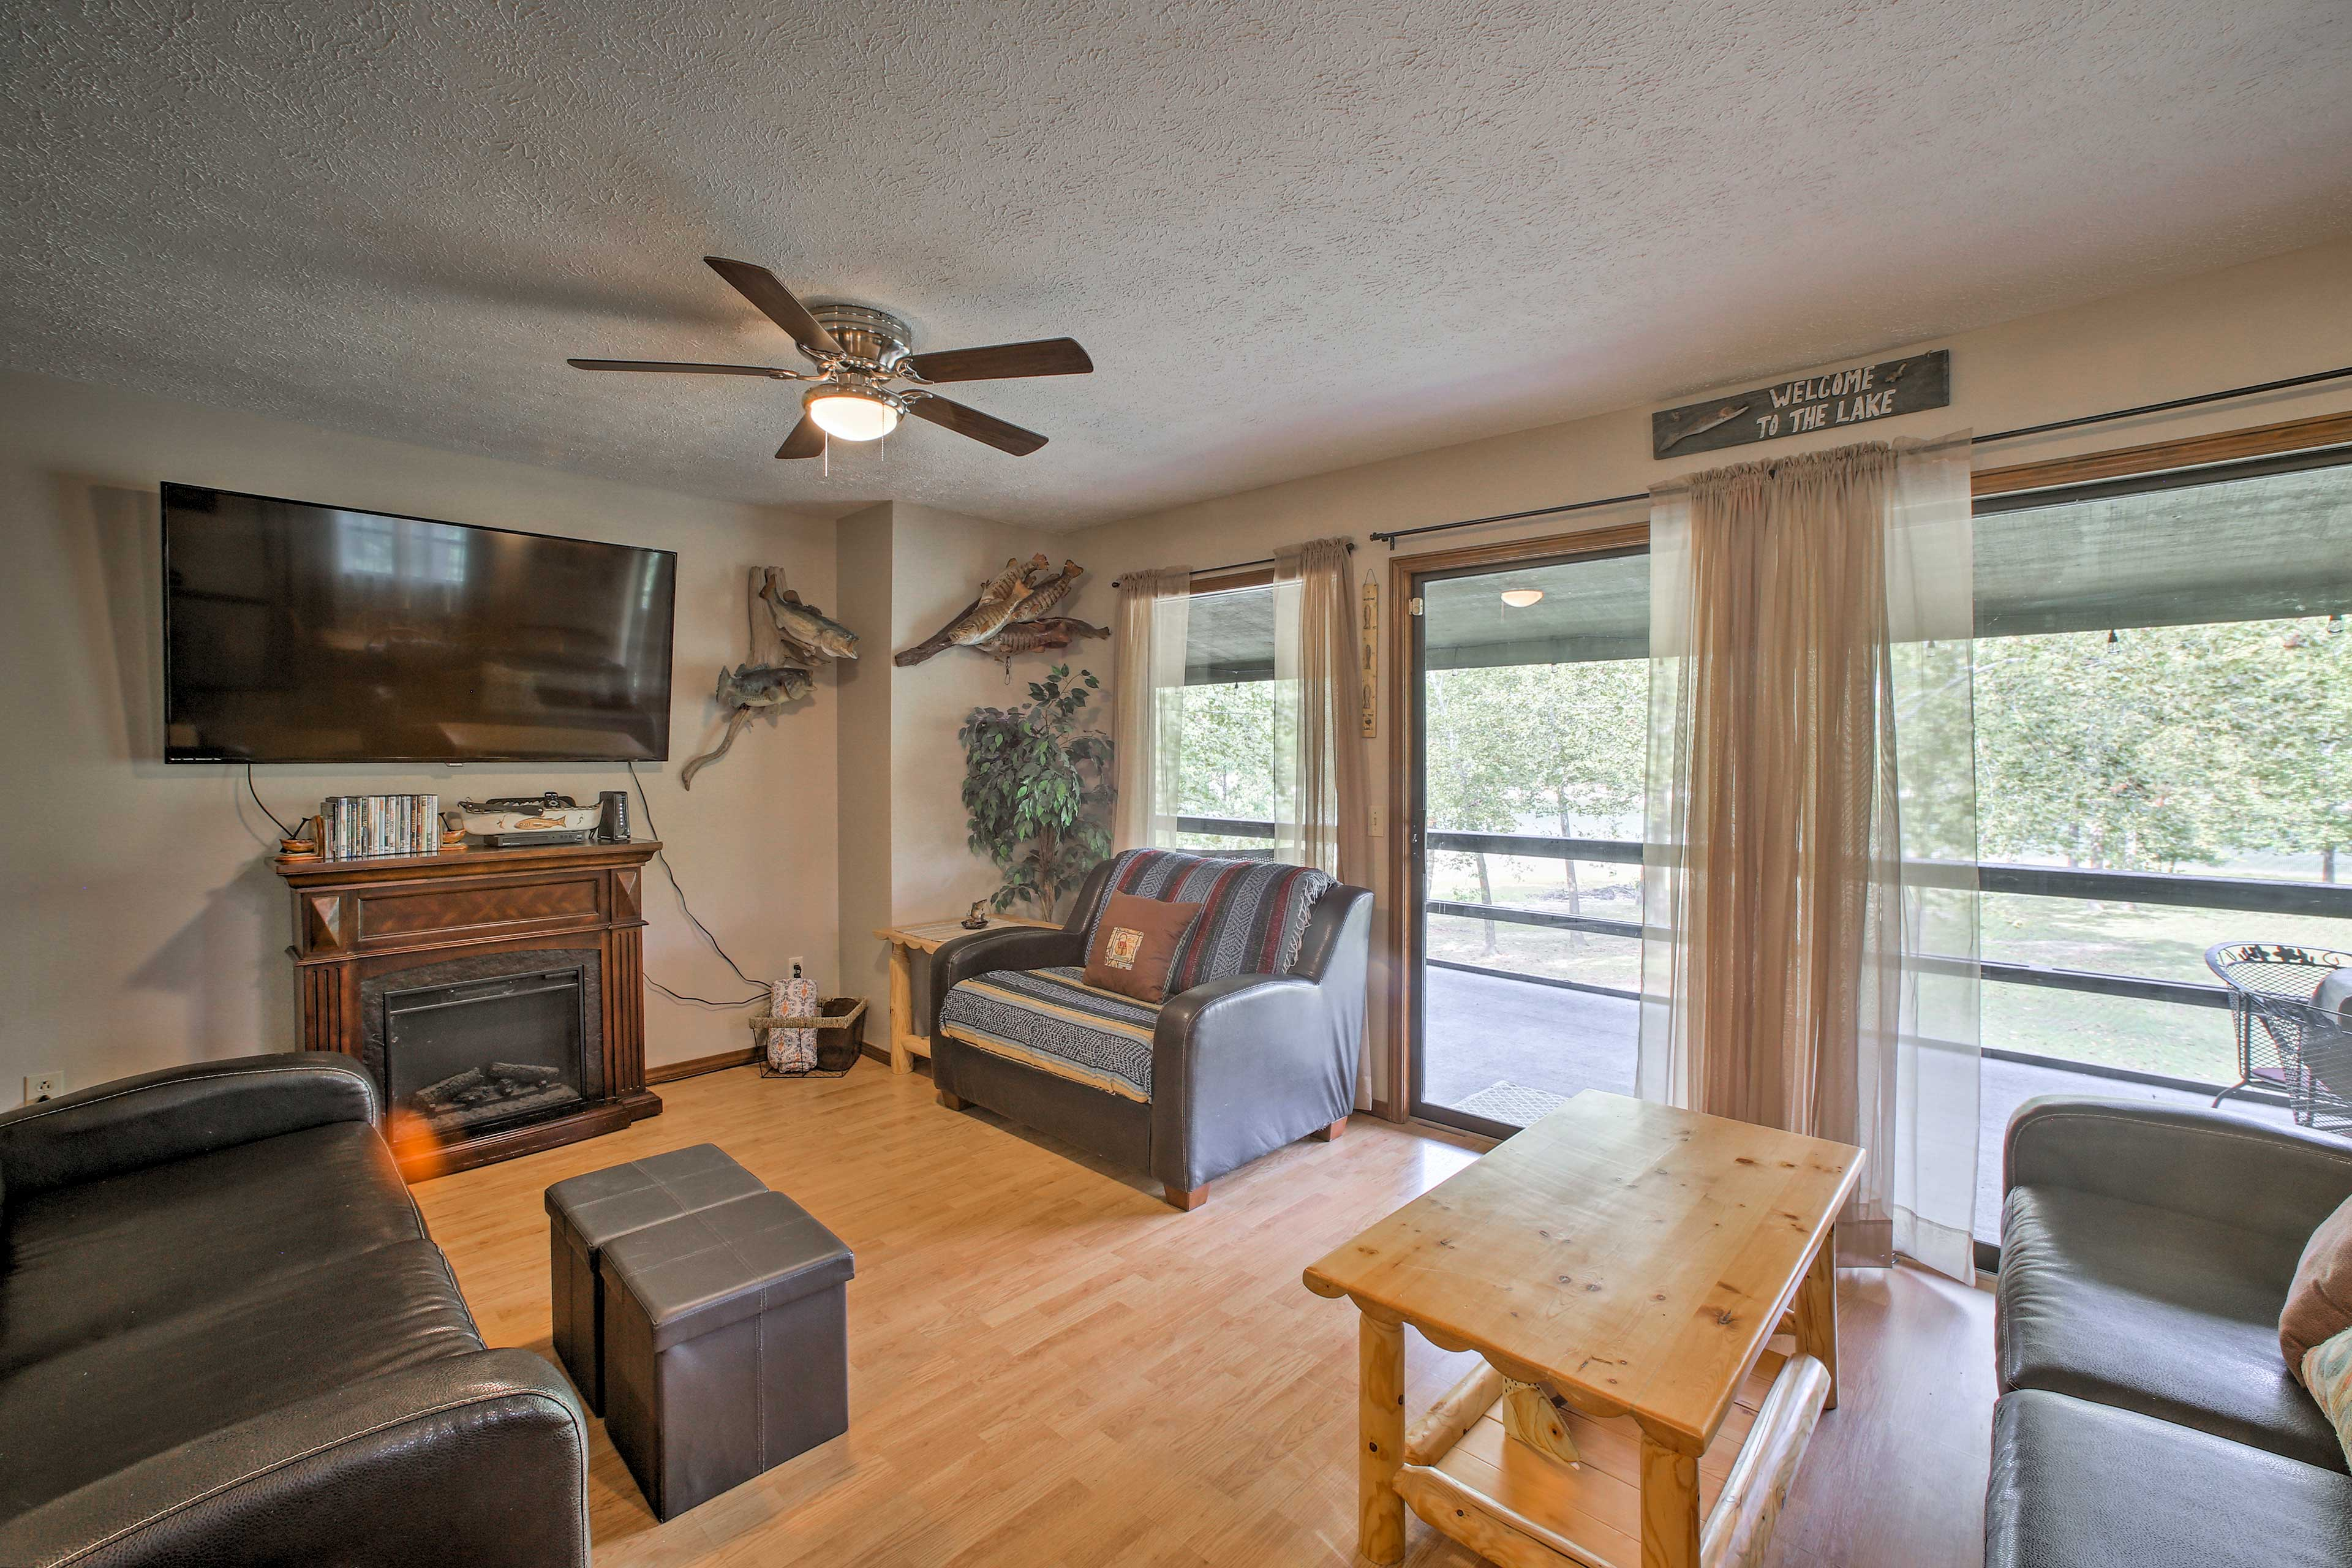 Relax with your loved ones with views of Table Rock Lake.